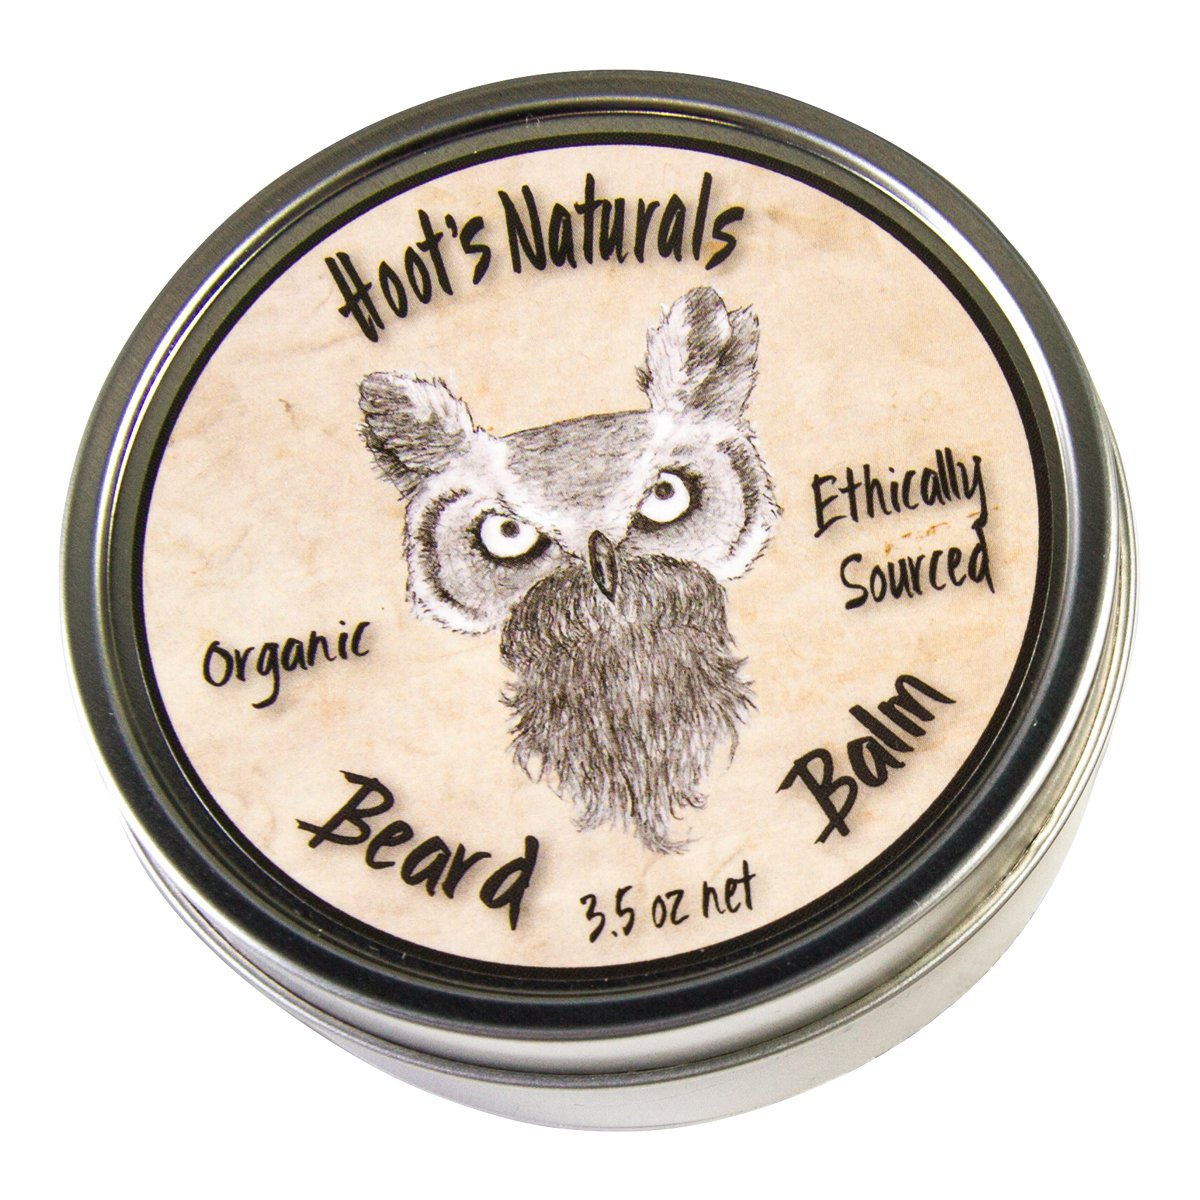 Hoot's Naturals Beard Balm, Extra Large 3.5oz - Organic Beard Oil and Butter Recipe with No Added Fragrance - Leave-In Beard Softener and Conditioner, That Thickens, Strengthens and Styles Facial Hair Growth Hoot' s Naturals